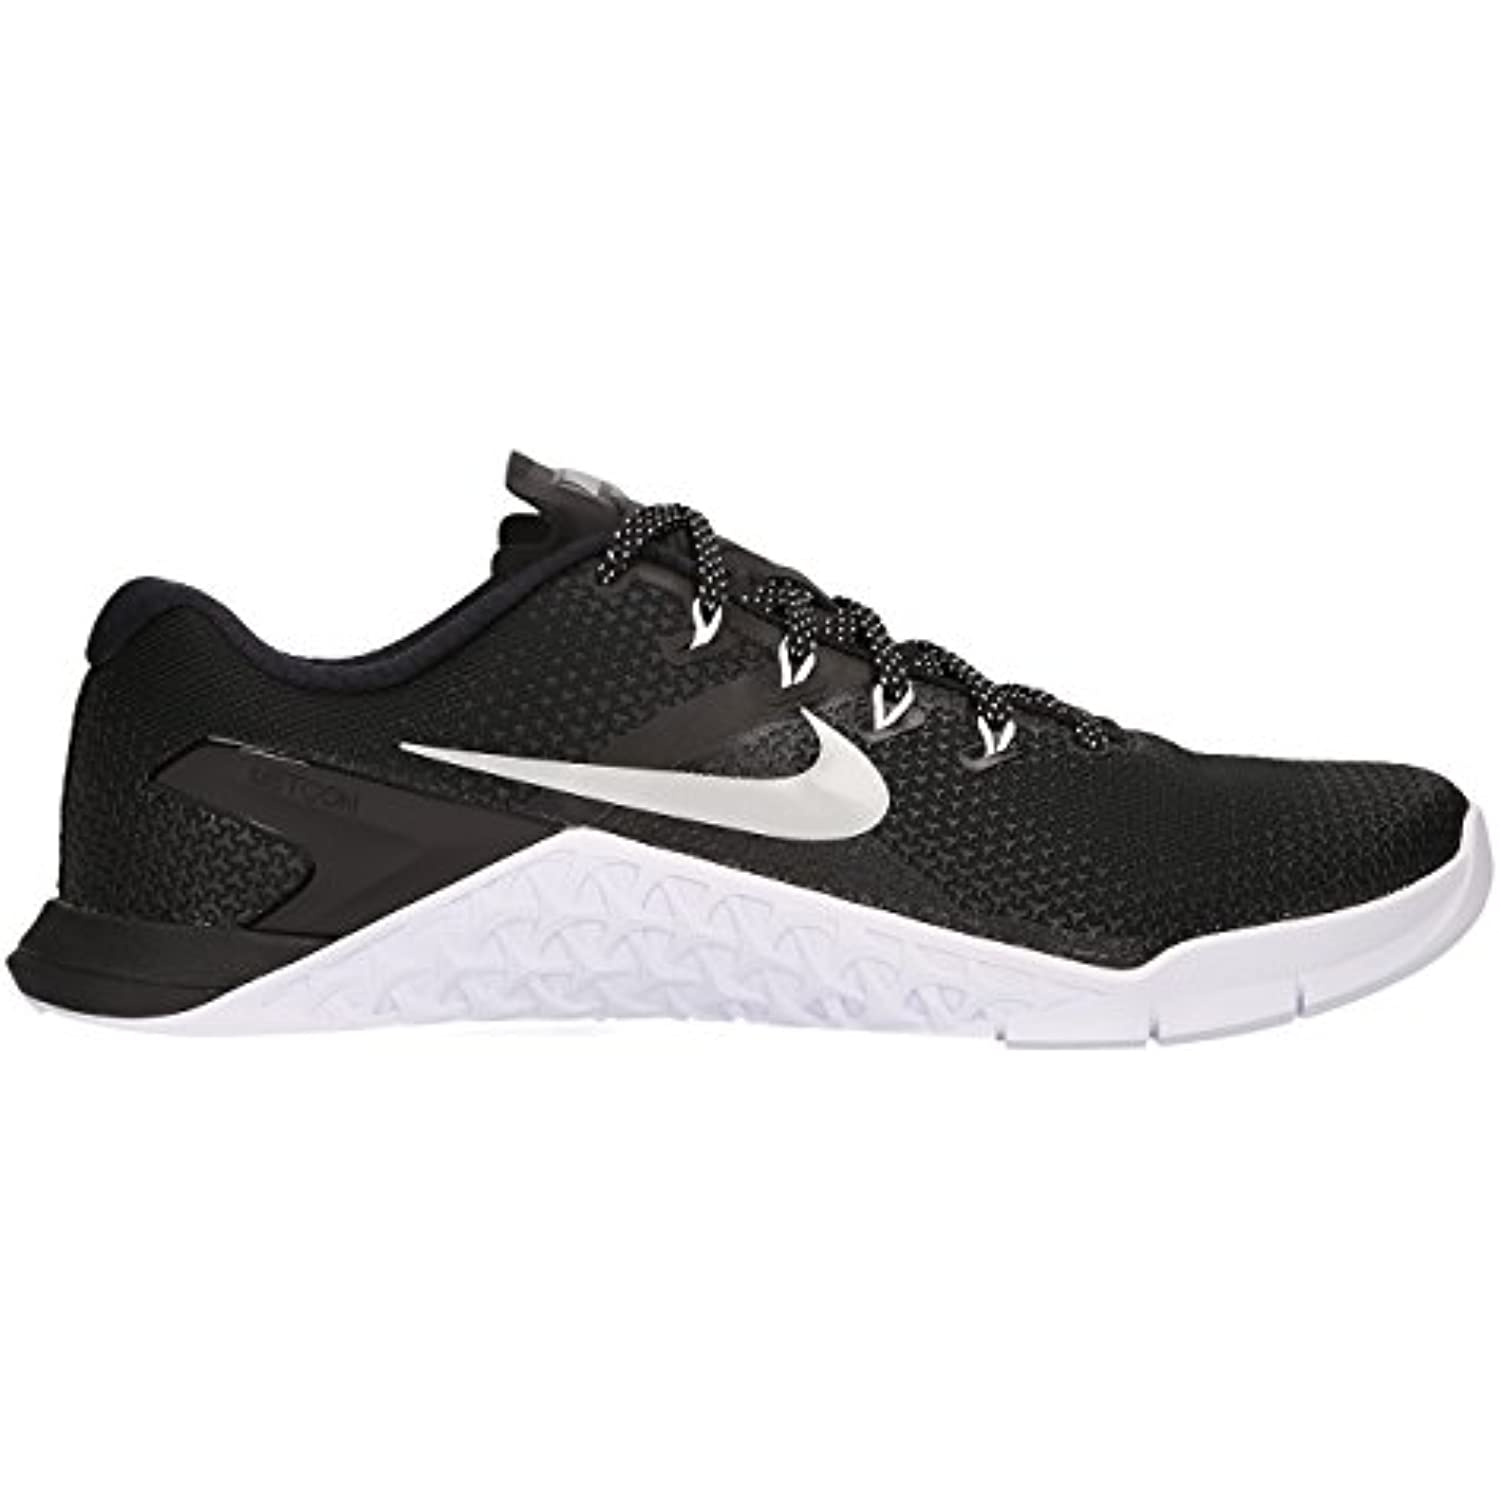 NIKE WoHommes Running 's Metcon 4 Training Shoe, Chaussures de Running WoHommes Compétition Femme, Multicolore (Black/Metallic Silver... - B072FNML5V - 6b9faf